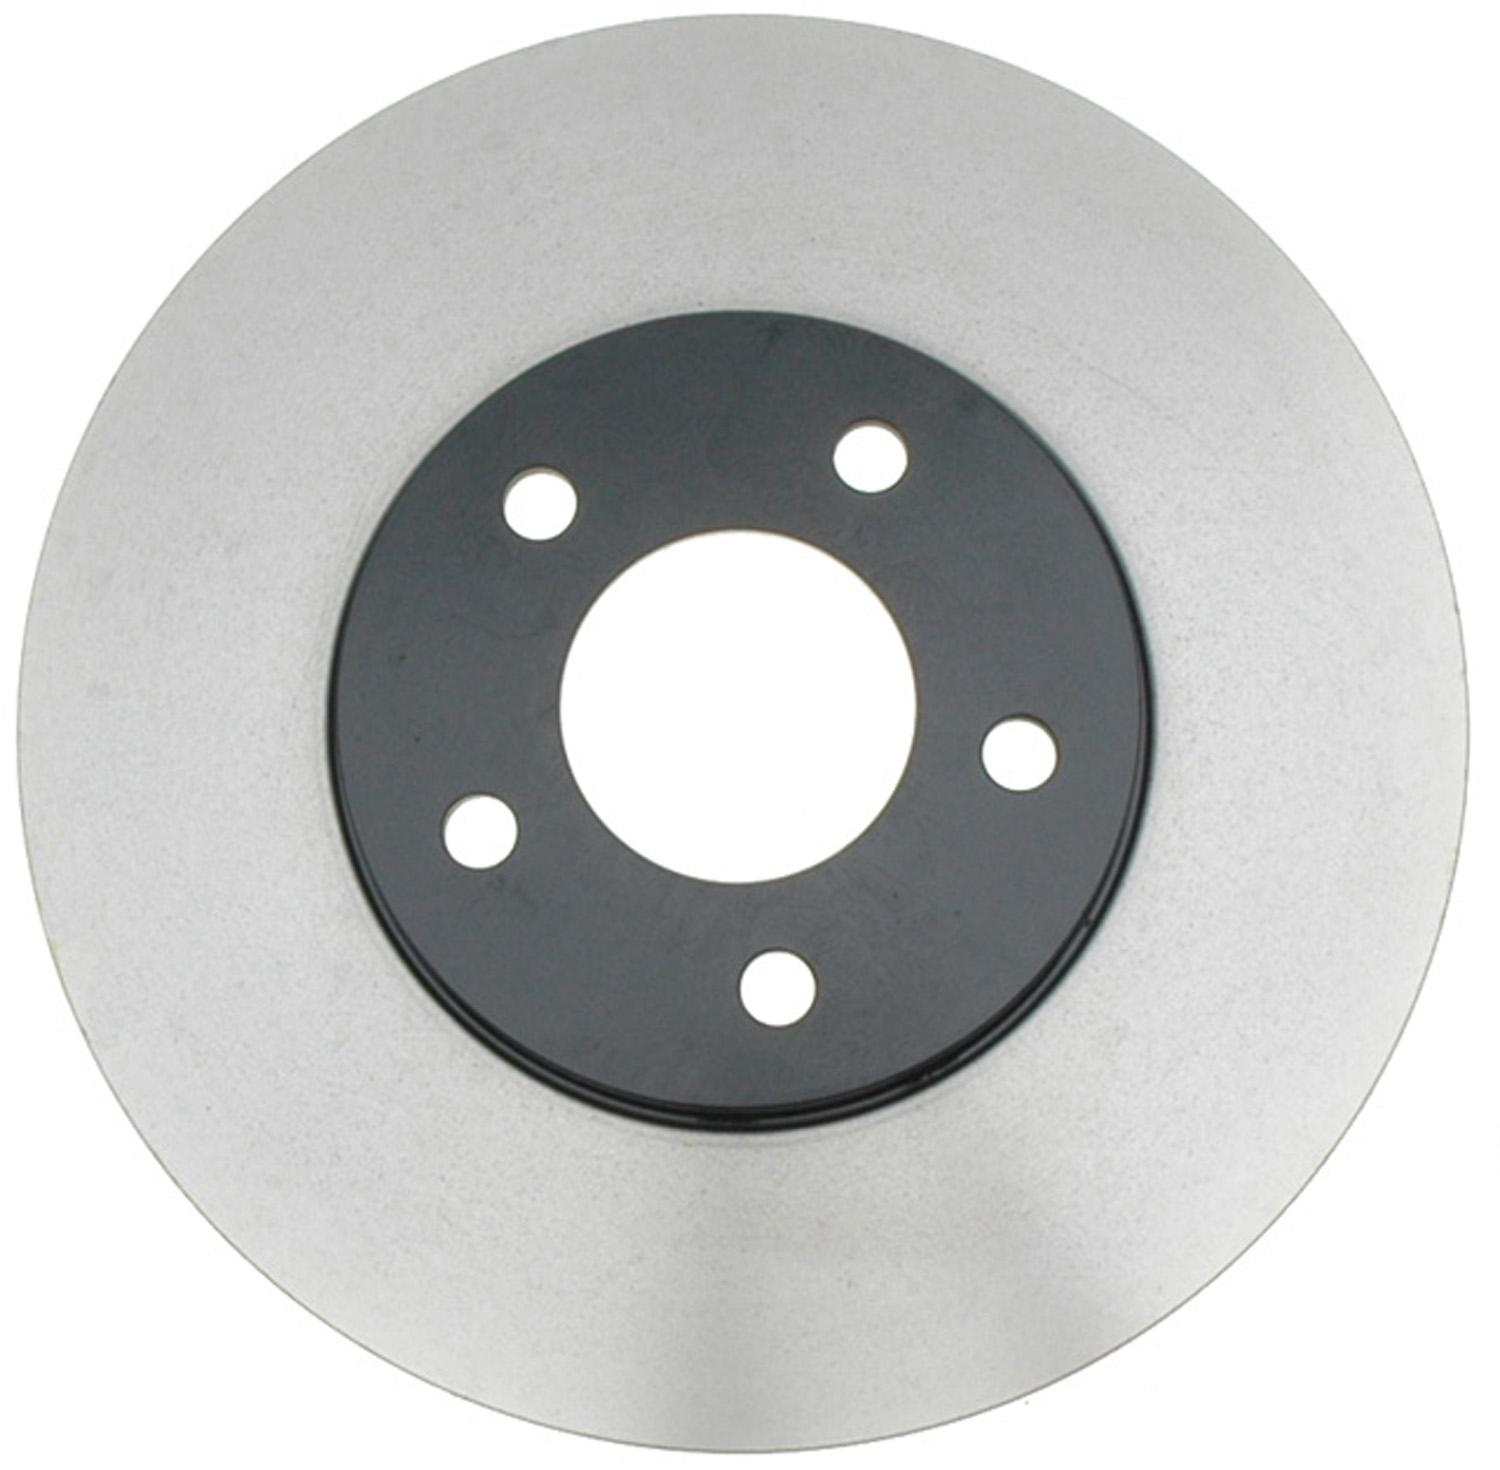 ACDELCO GOLD/PROFESSIONAL BRAKES - Disc Brake Rotor (Front) - ADU 18A1422